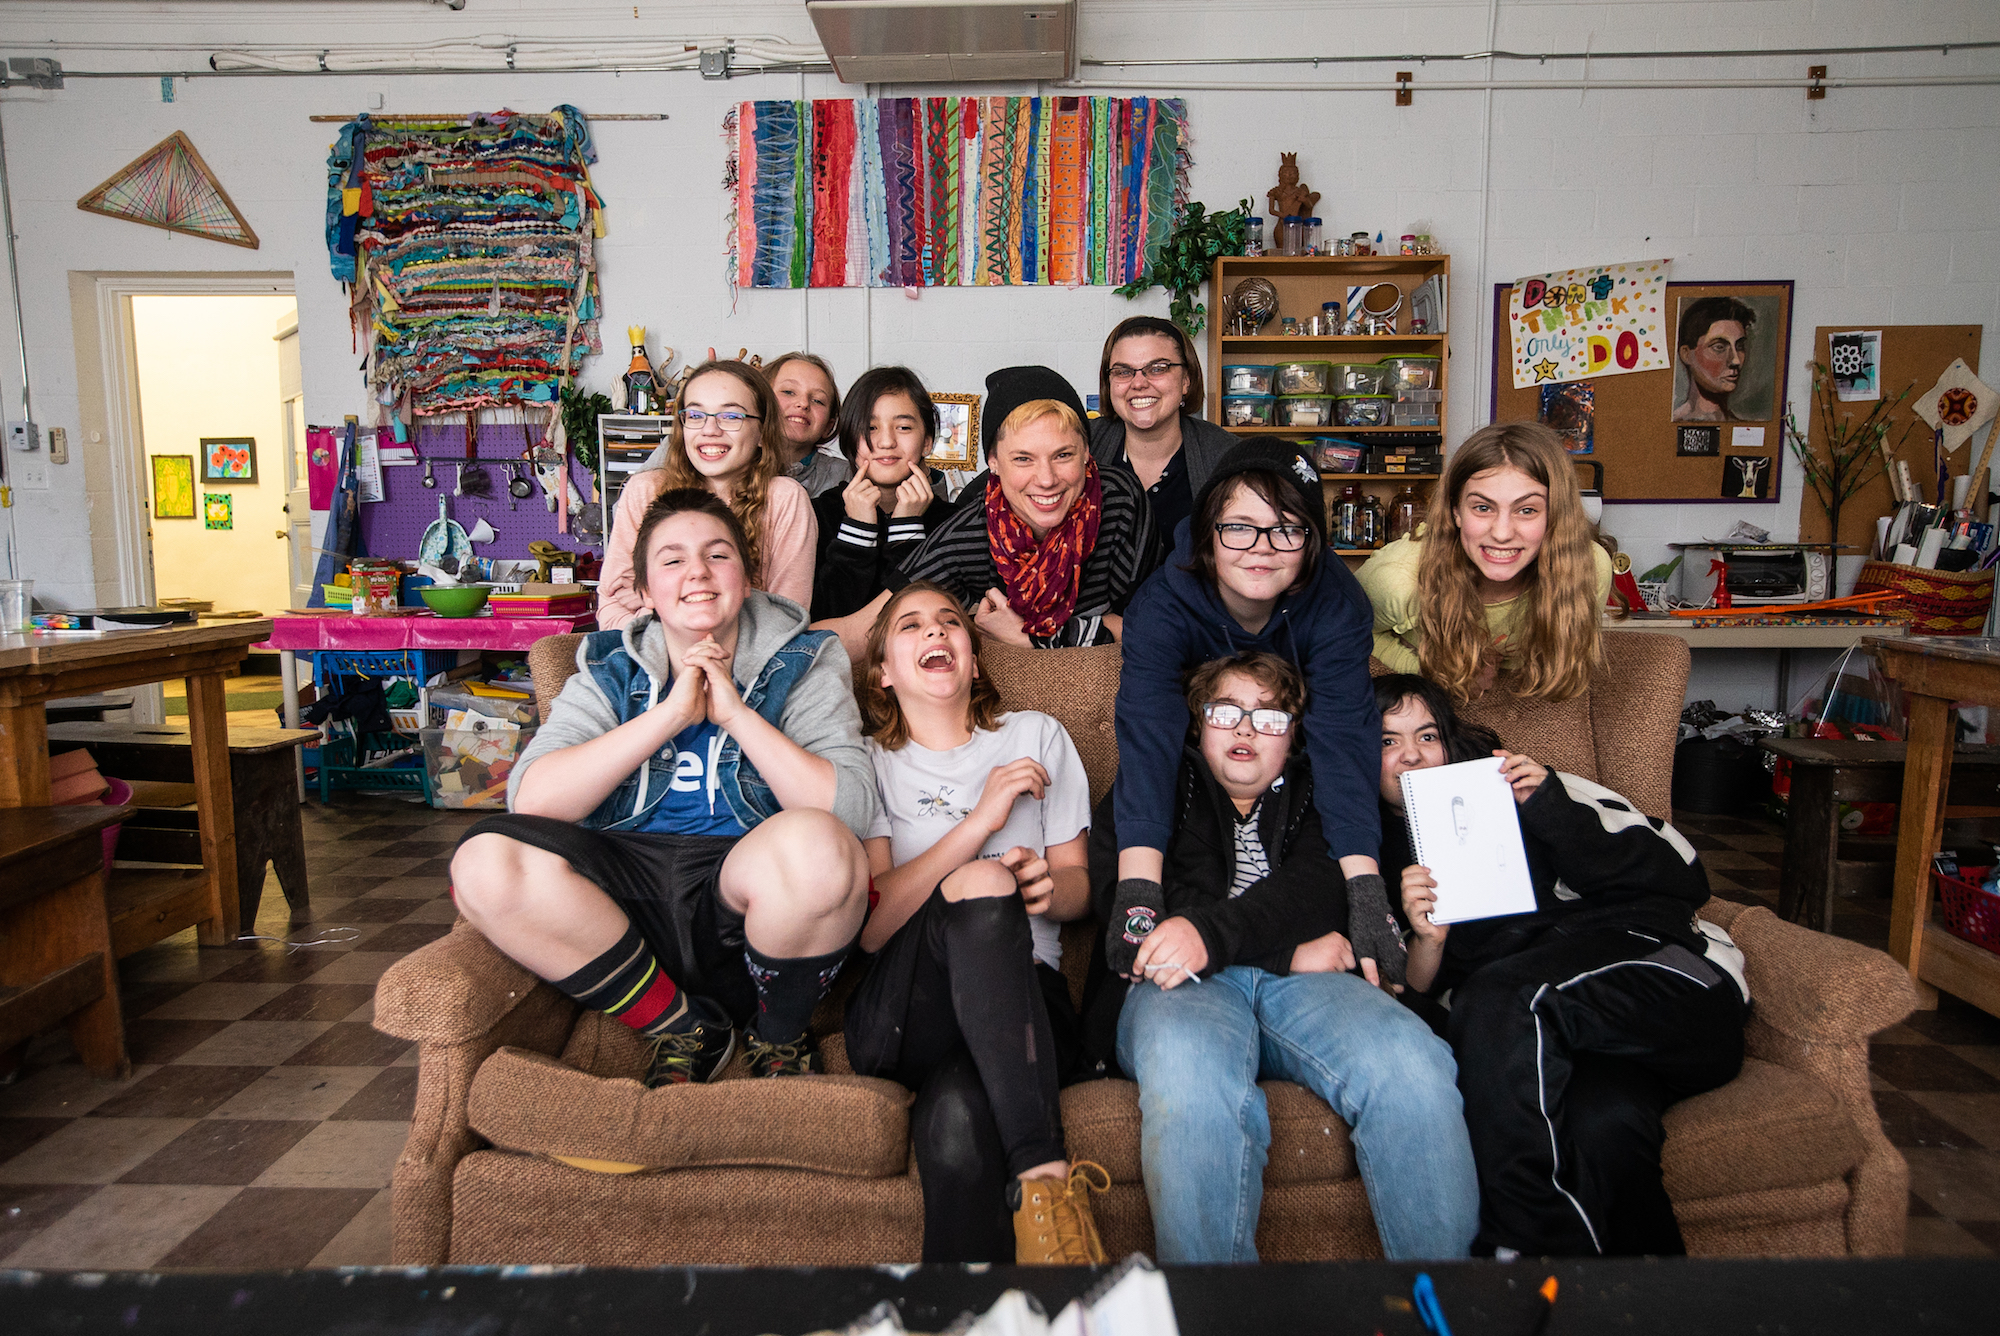 An image of a group of students smiling and laughing sitting on a couch in an art studio.